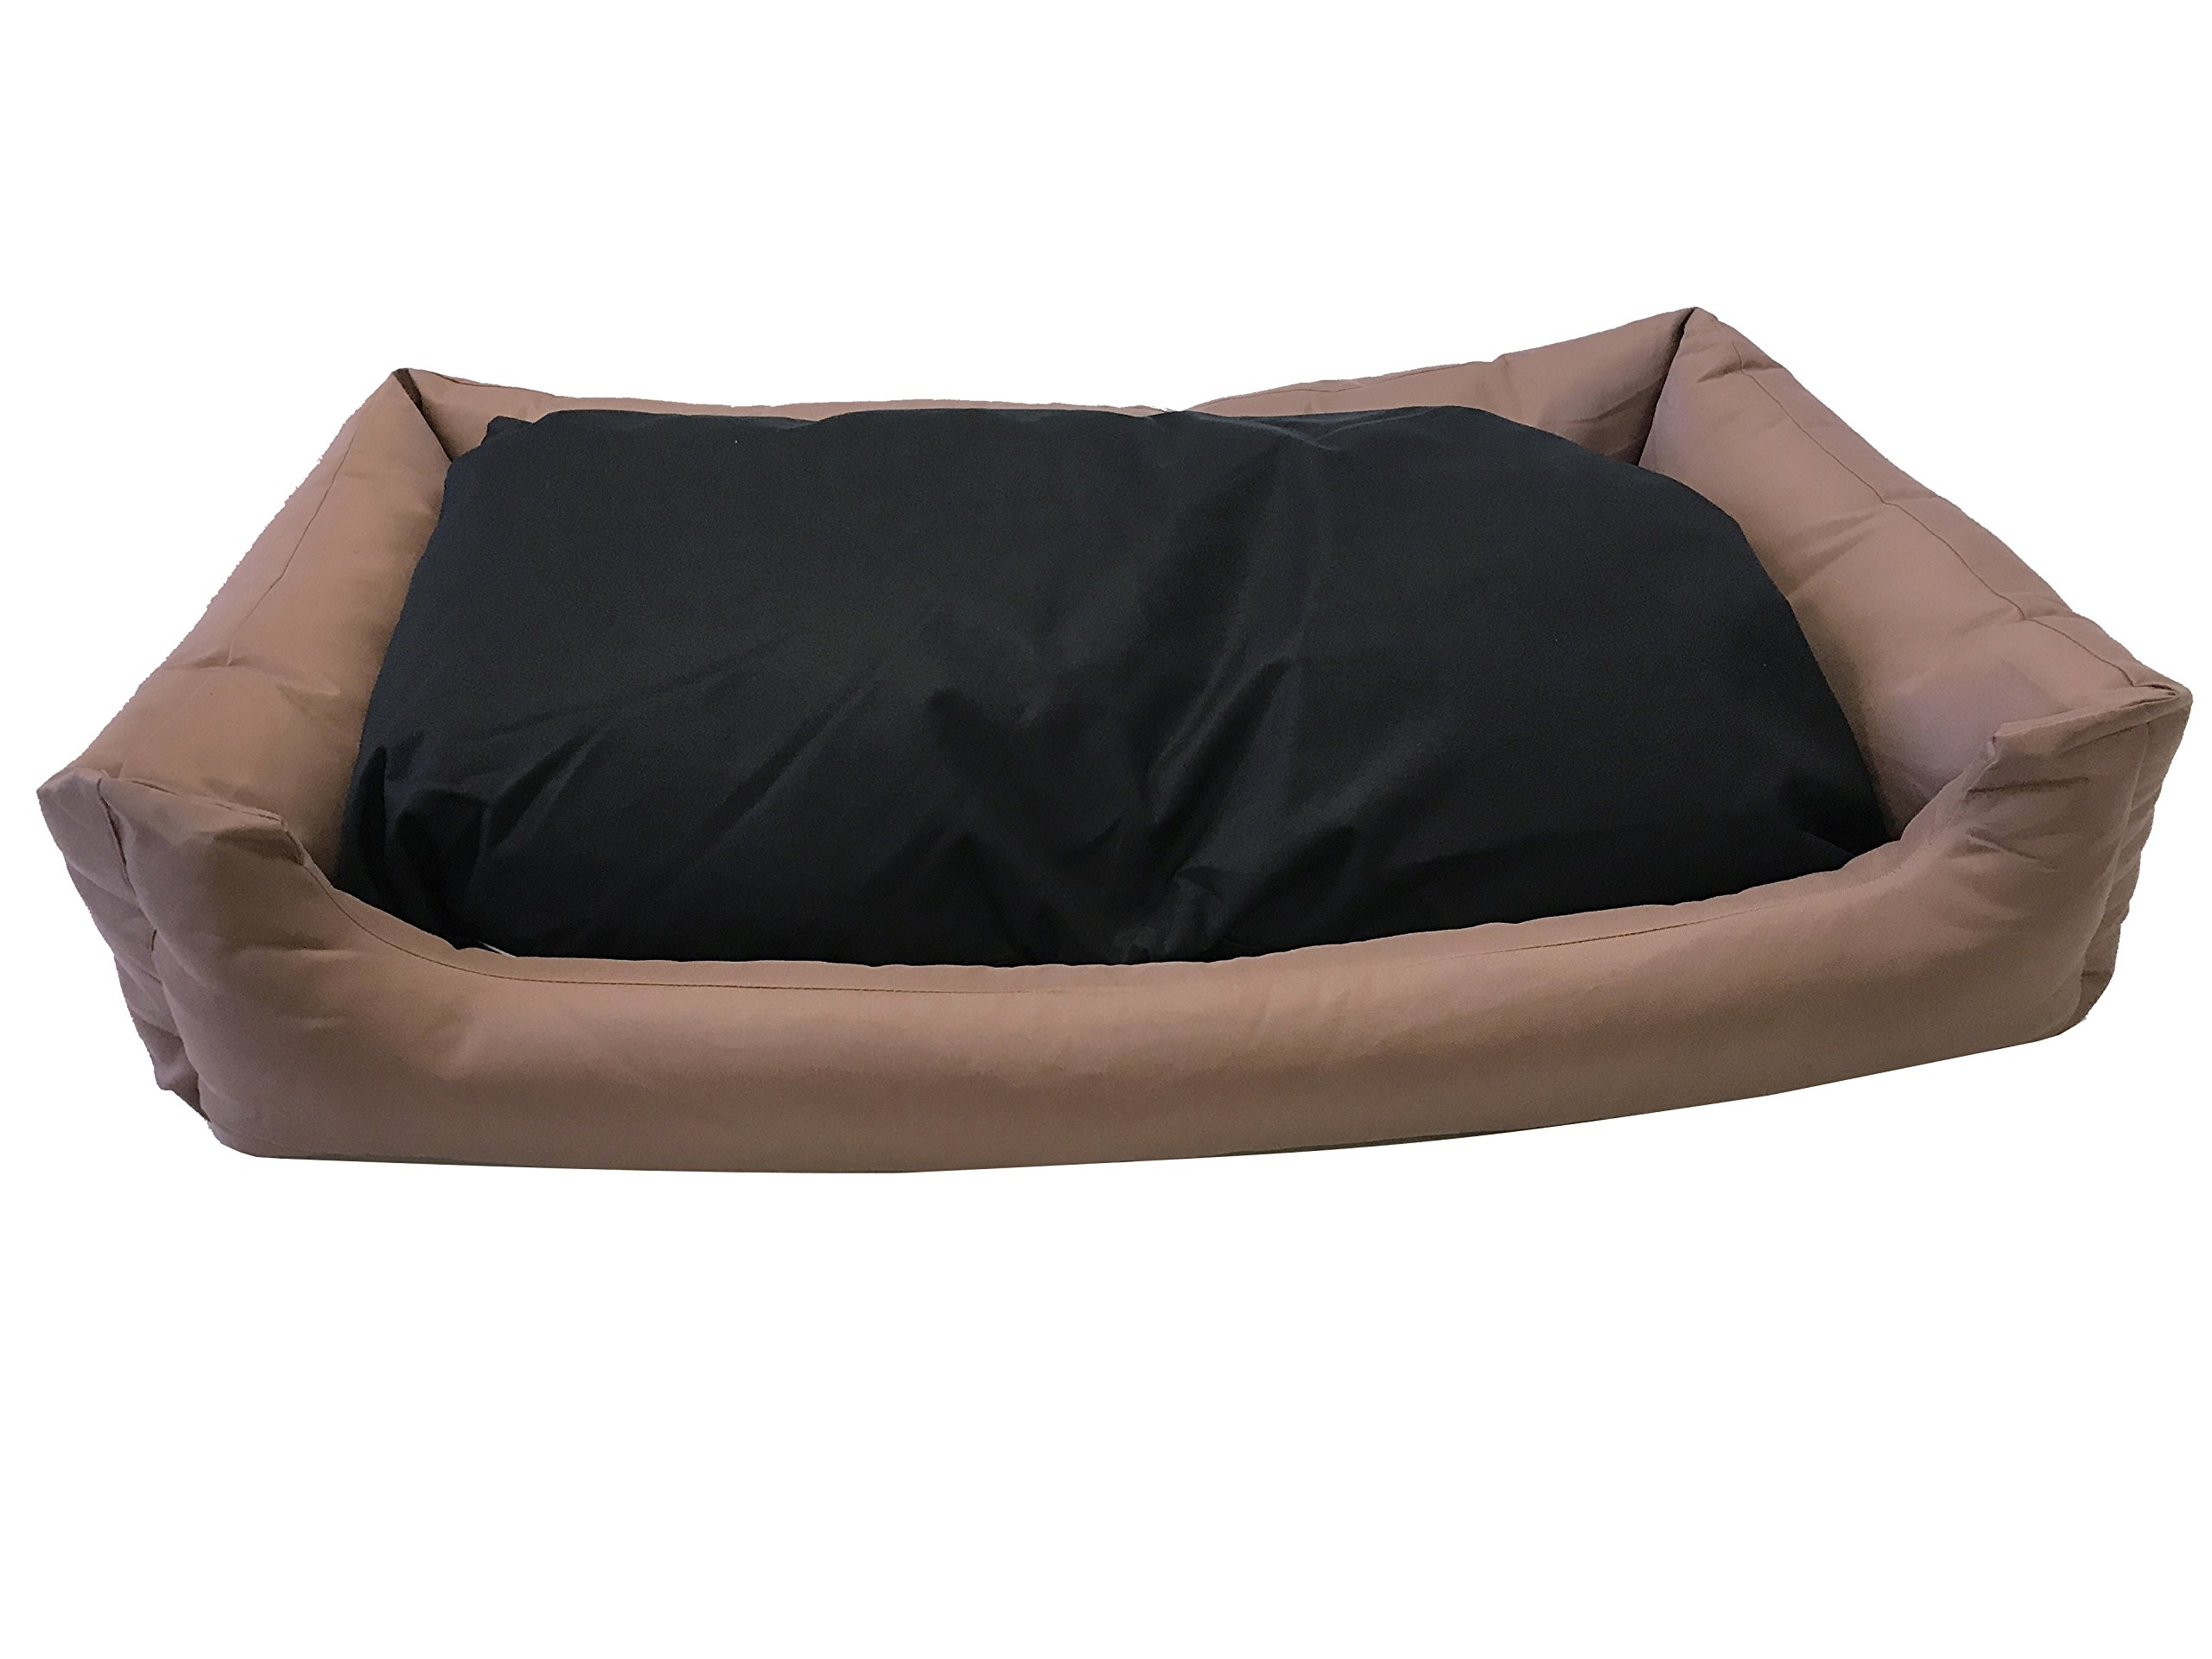 eConsumersUSA Dog Bed Stuffed Pillow with Polyester filling; Durable External OXFORD fabric Waterproof Anti Slip Cover and Inner Liner Included for Small to Large Dogs (54x37 inches, Brown)